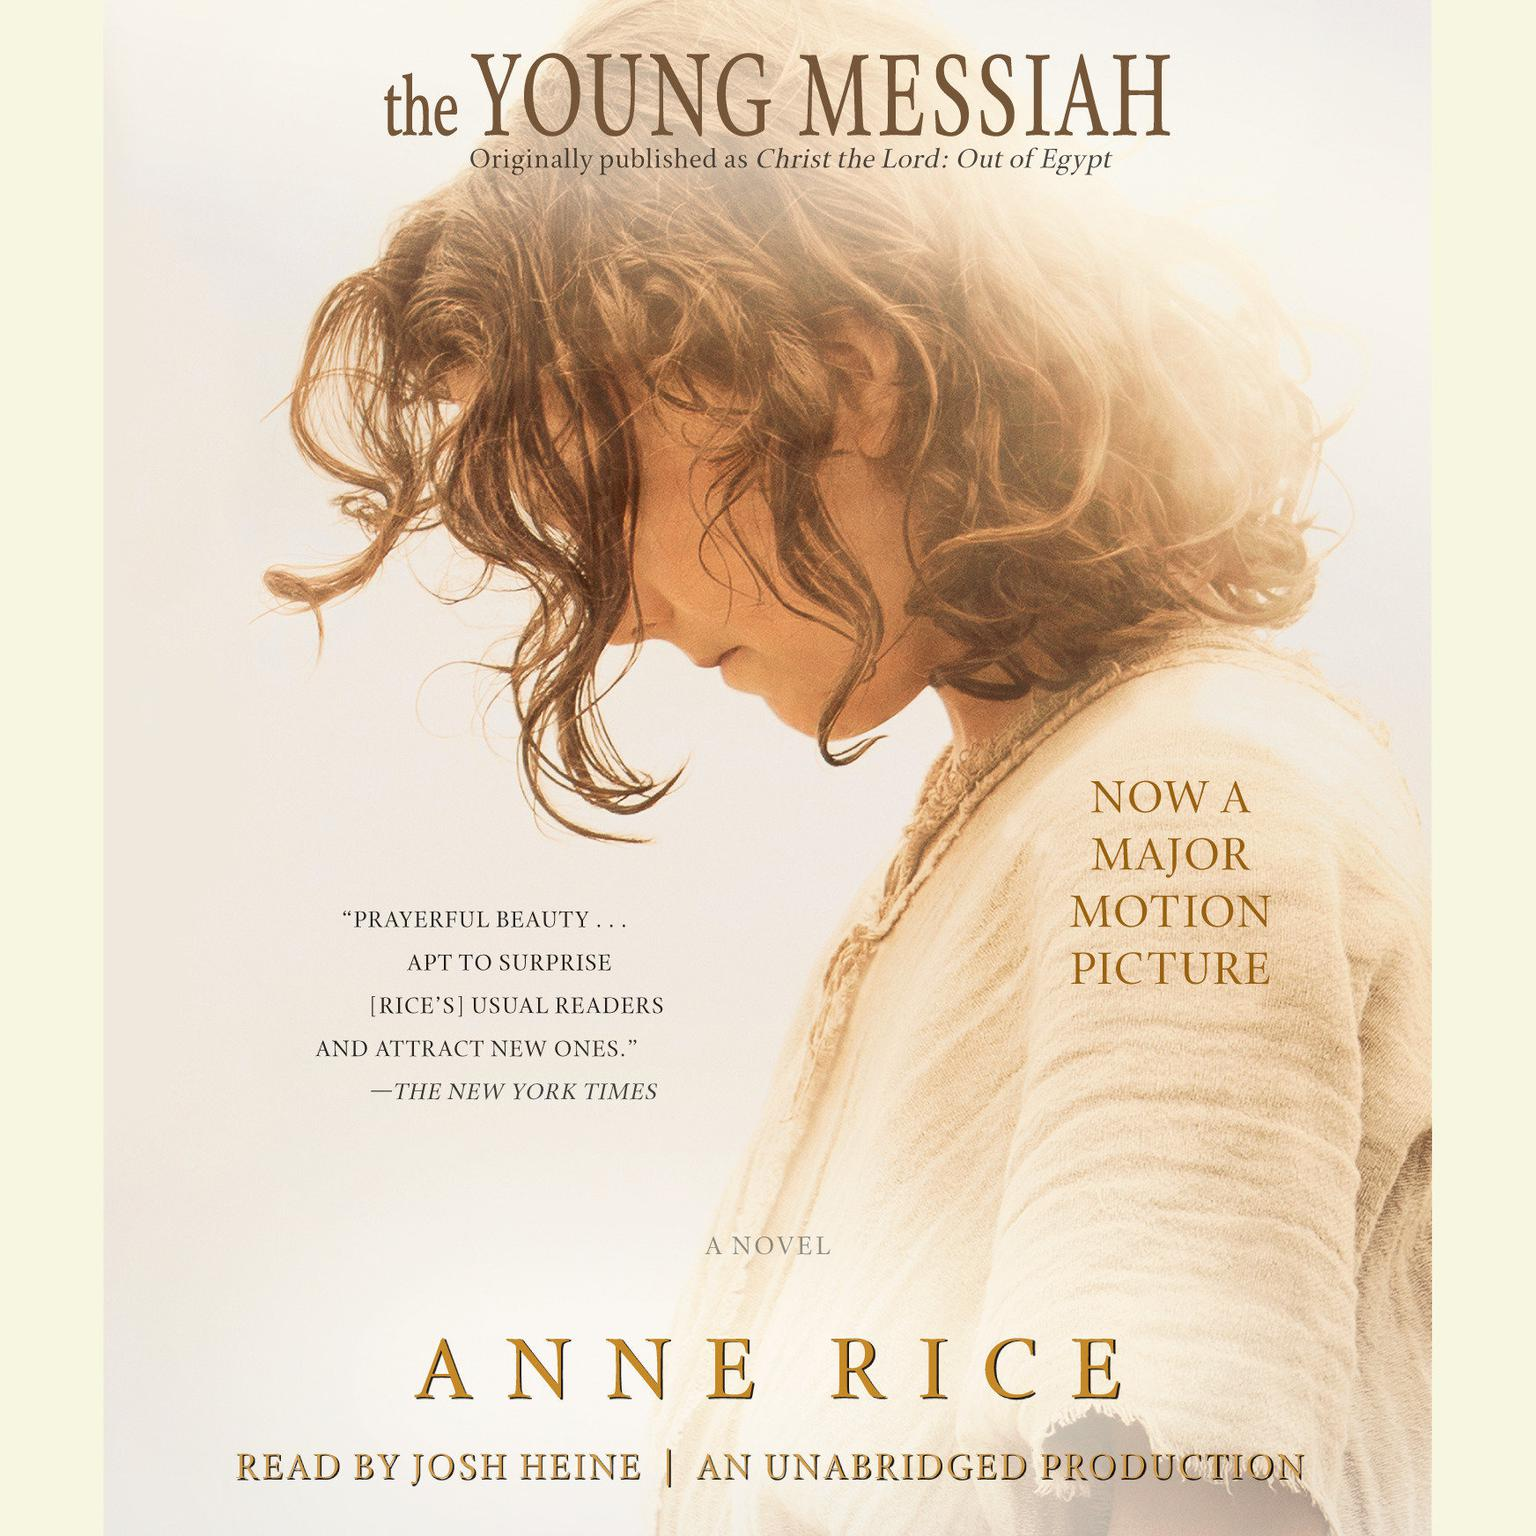 Printable The Young Messiah (Movie tie-in) (originally published as Christ the Lord: Out of Egypt): A Novel Audiobook Cover Art